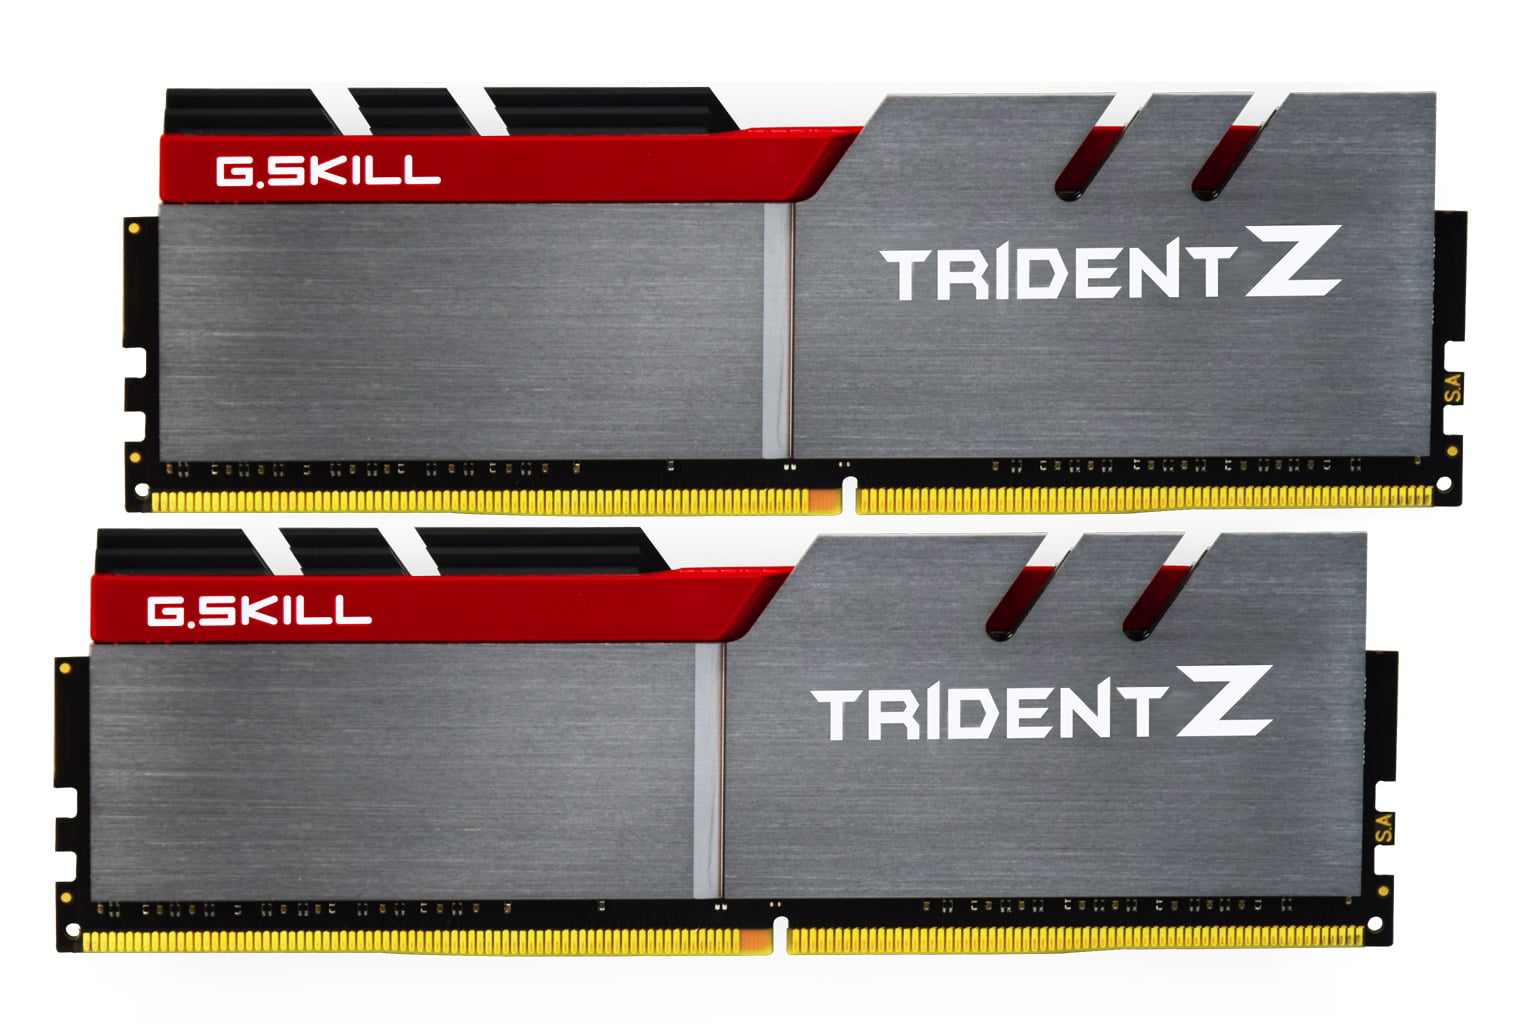 16GB G.Skill DDR4 Trident Z 3600Mhz PC4-28800 CL17 (17-18-18-38) 1.35V Dual Channel Kit (2x8GB)